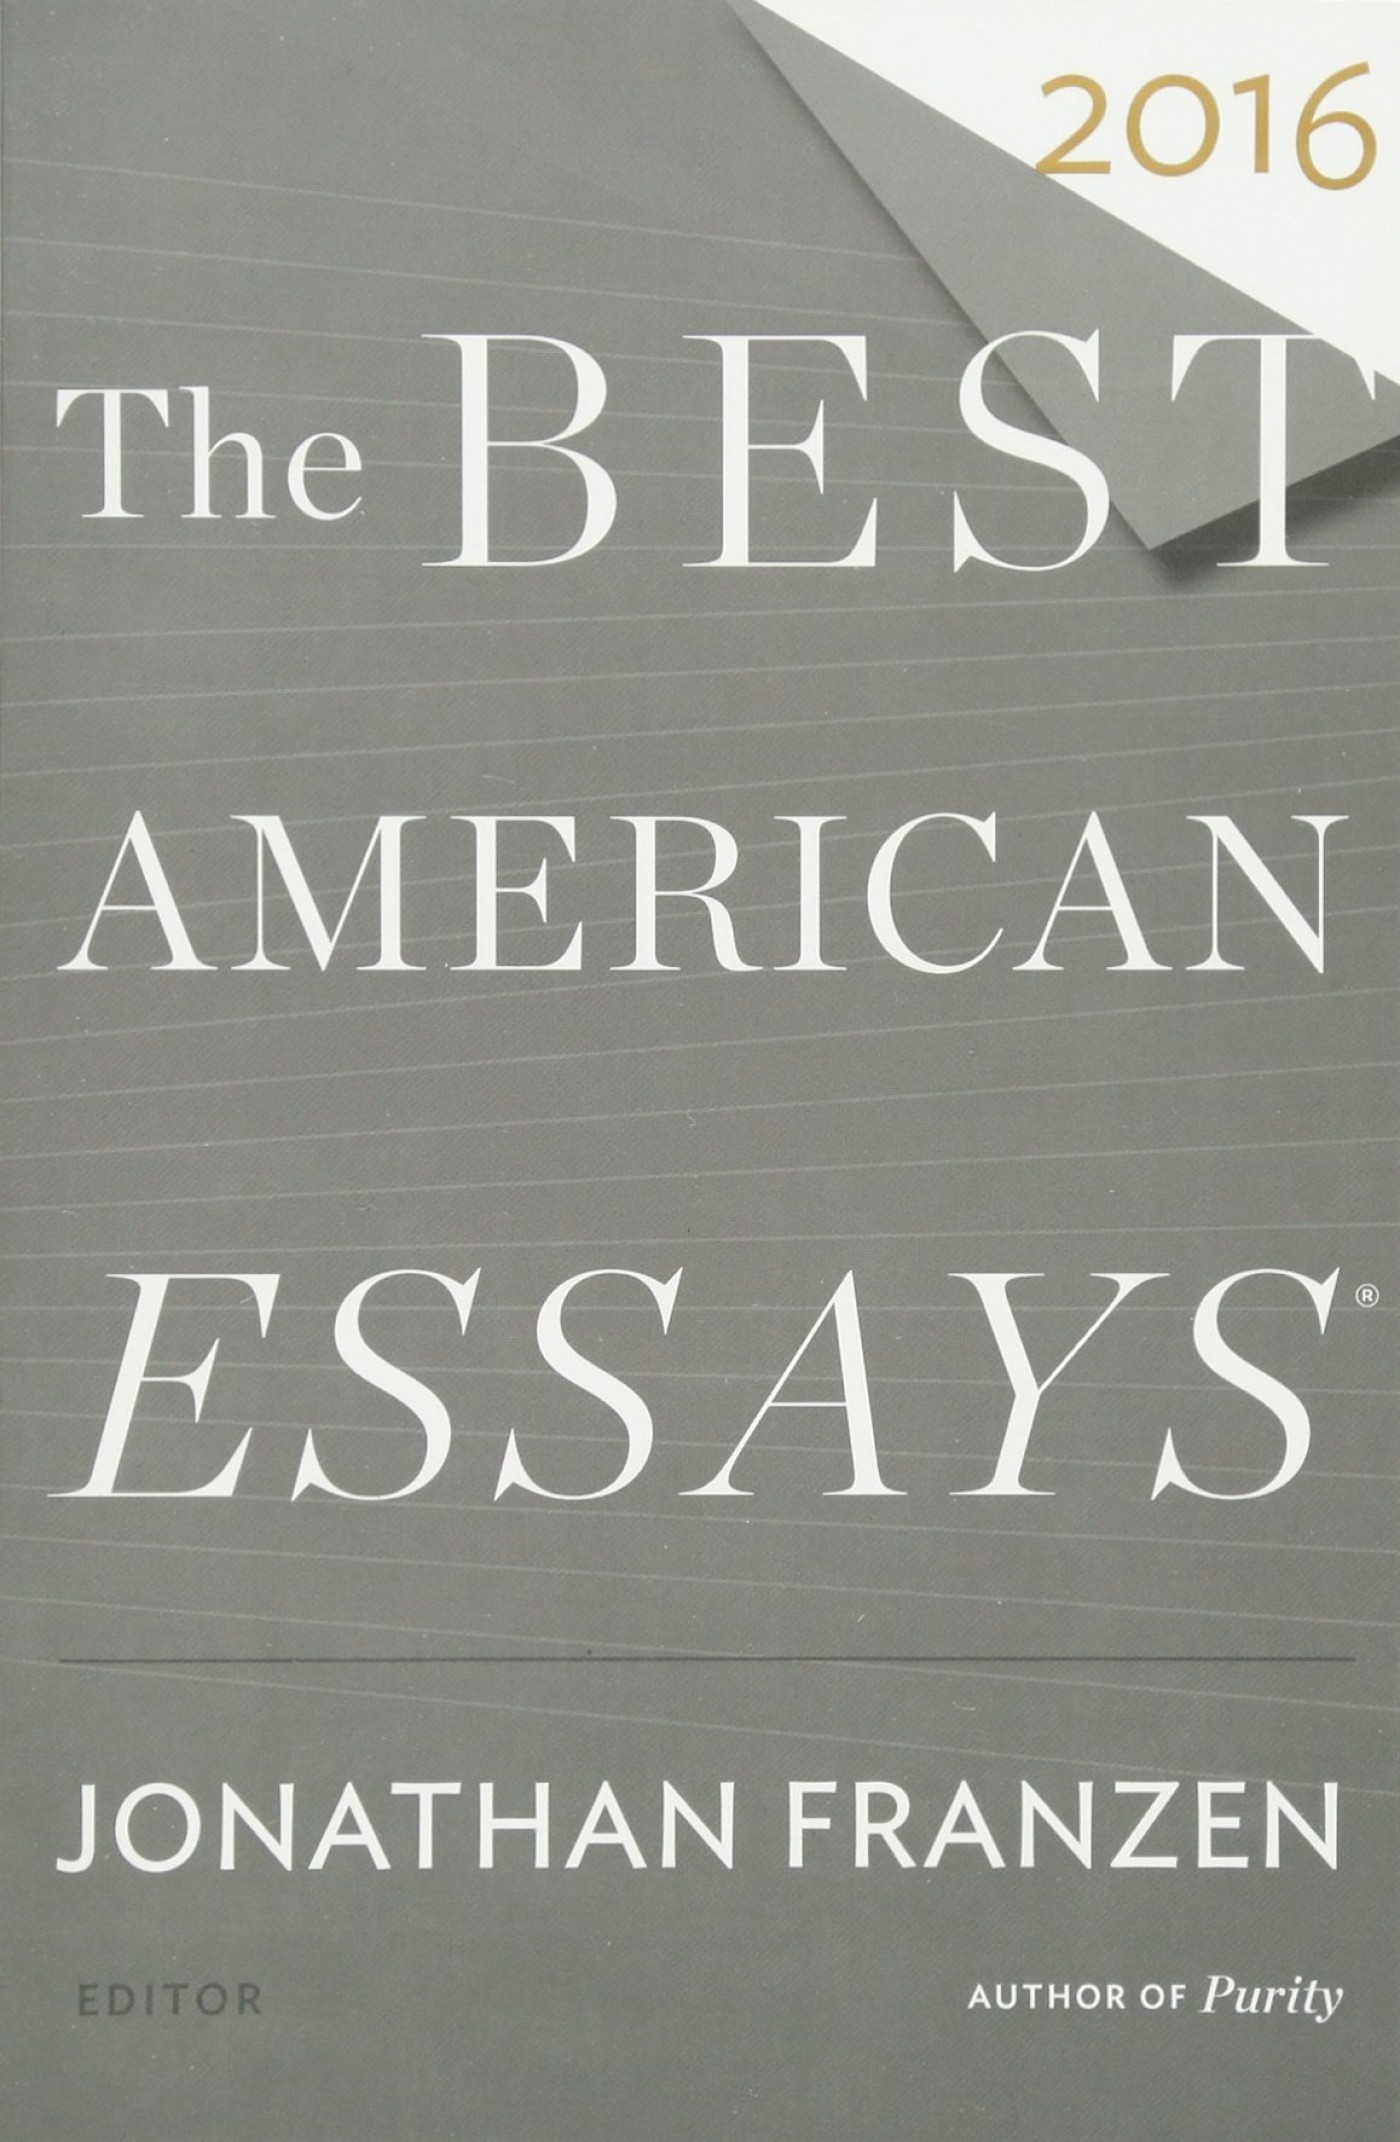 001 71a6bhsgsdl The Best American Essays Essay Phenomenal 2016 Pdf Download Audiobook Sparknotes 1400